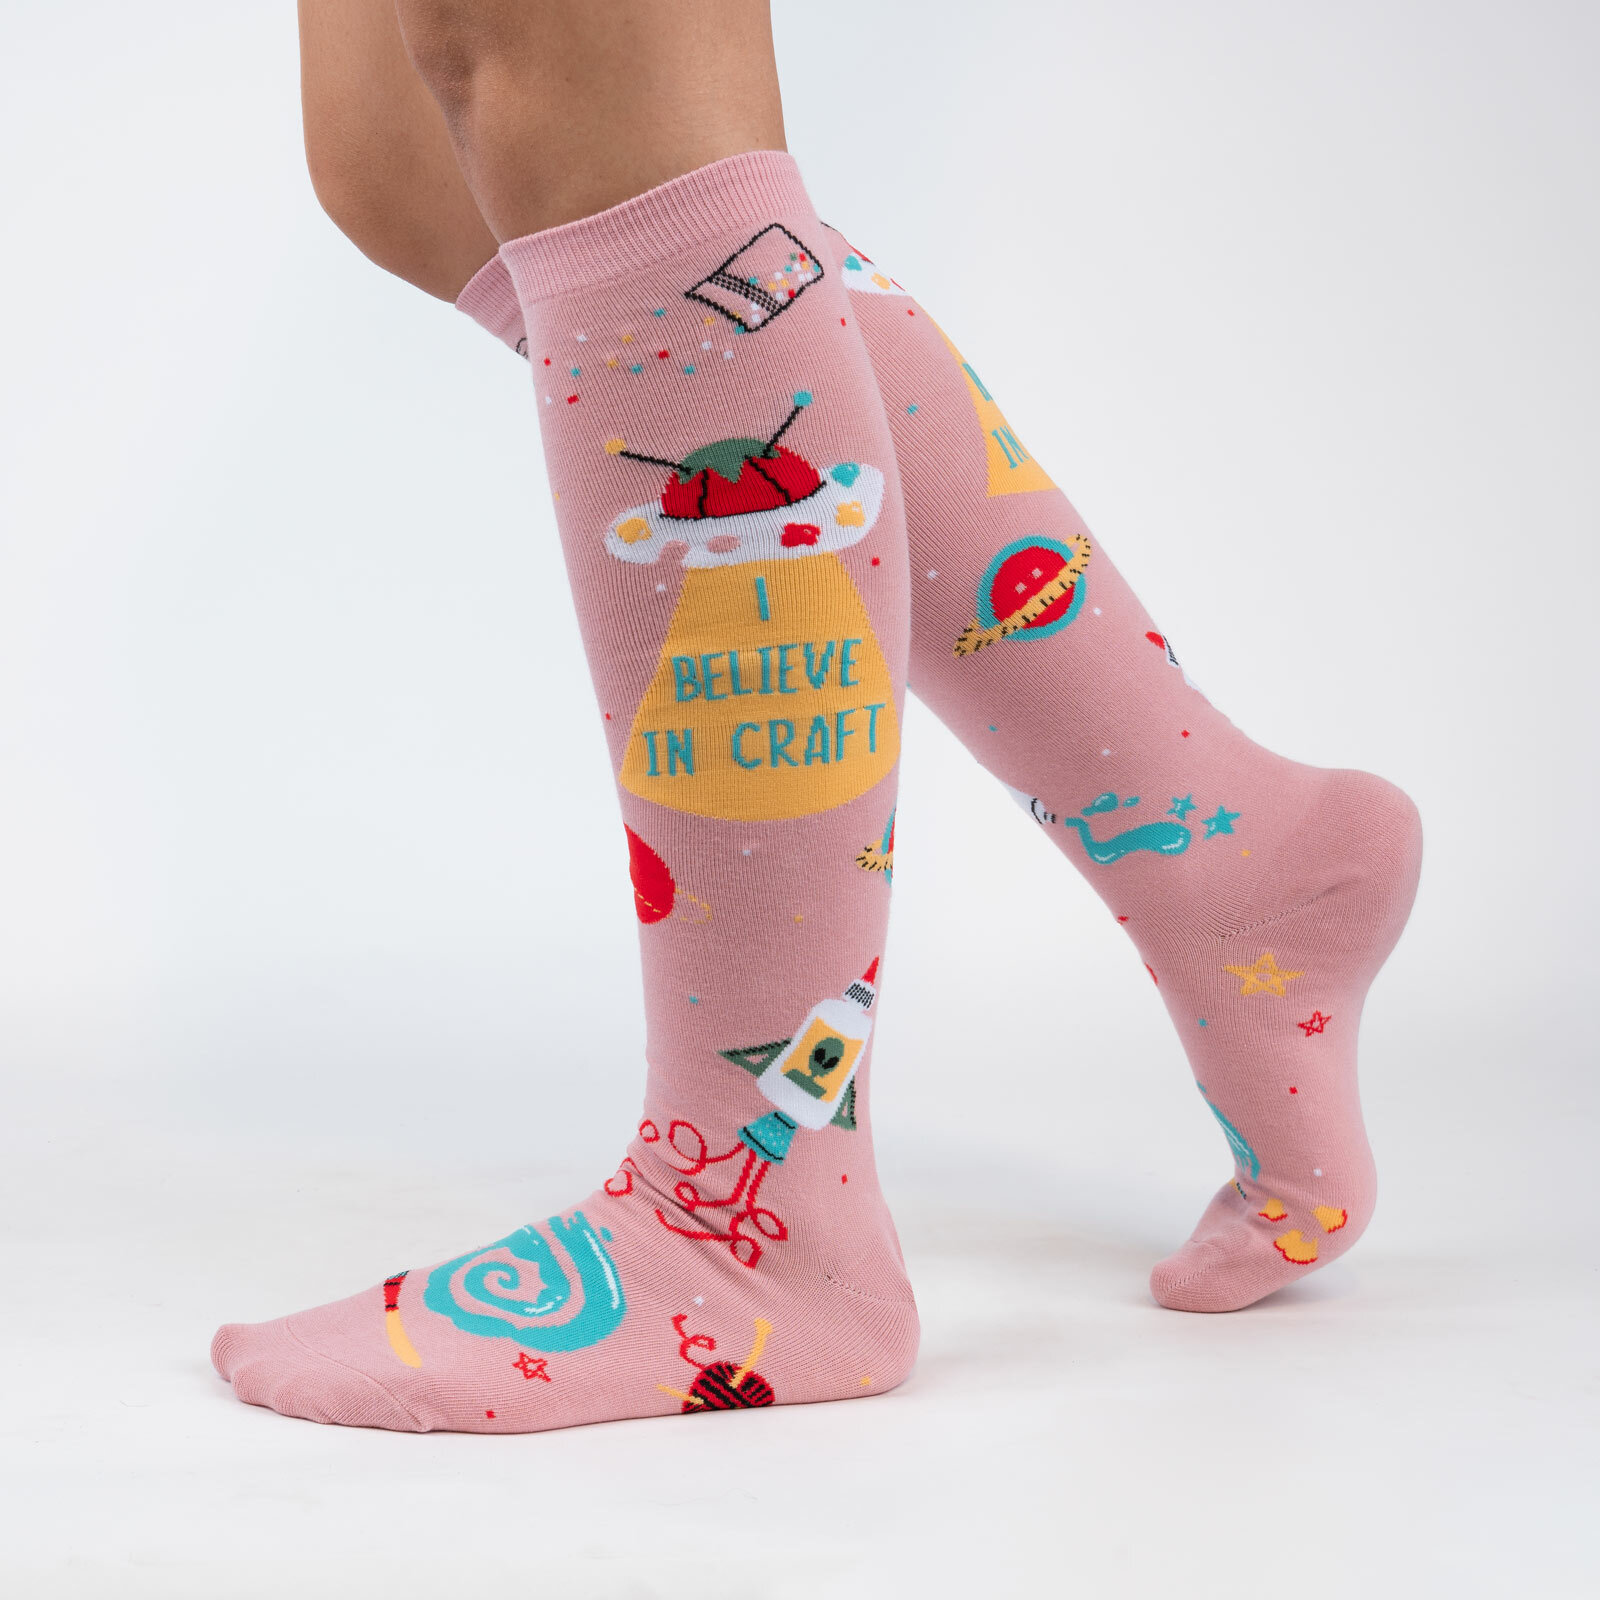 model wearing I Believe in Craft - Arts and Crafts Knee High Socks Pink - Women's